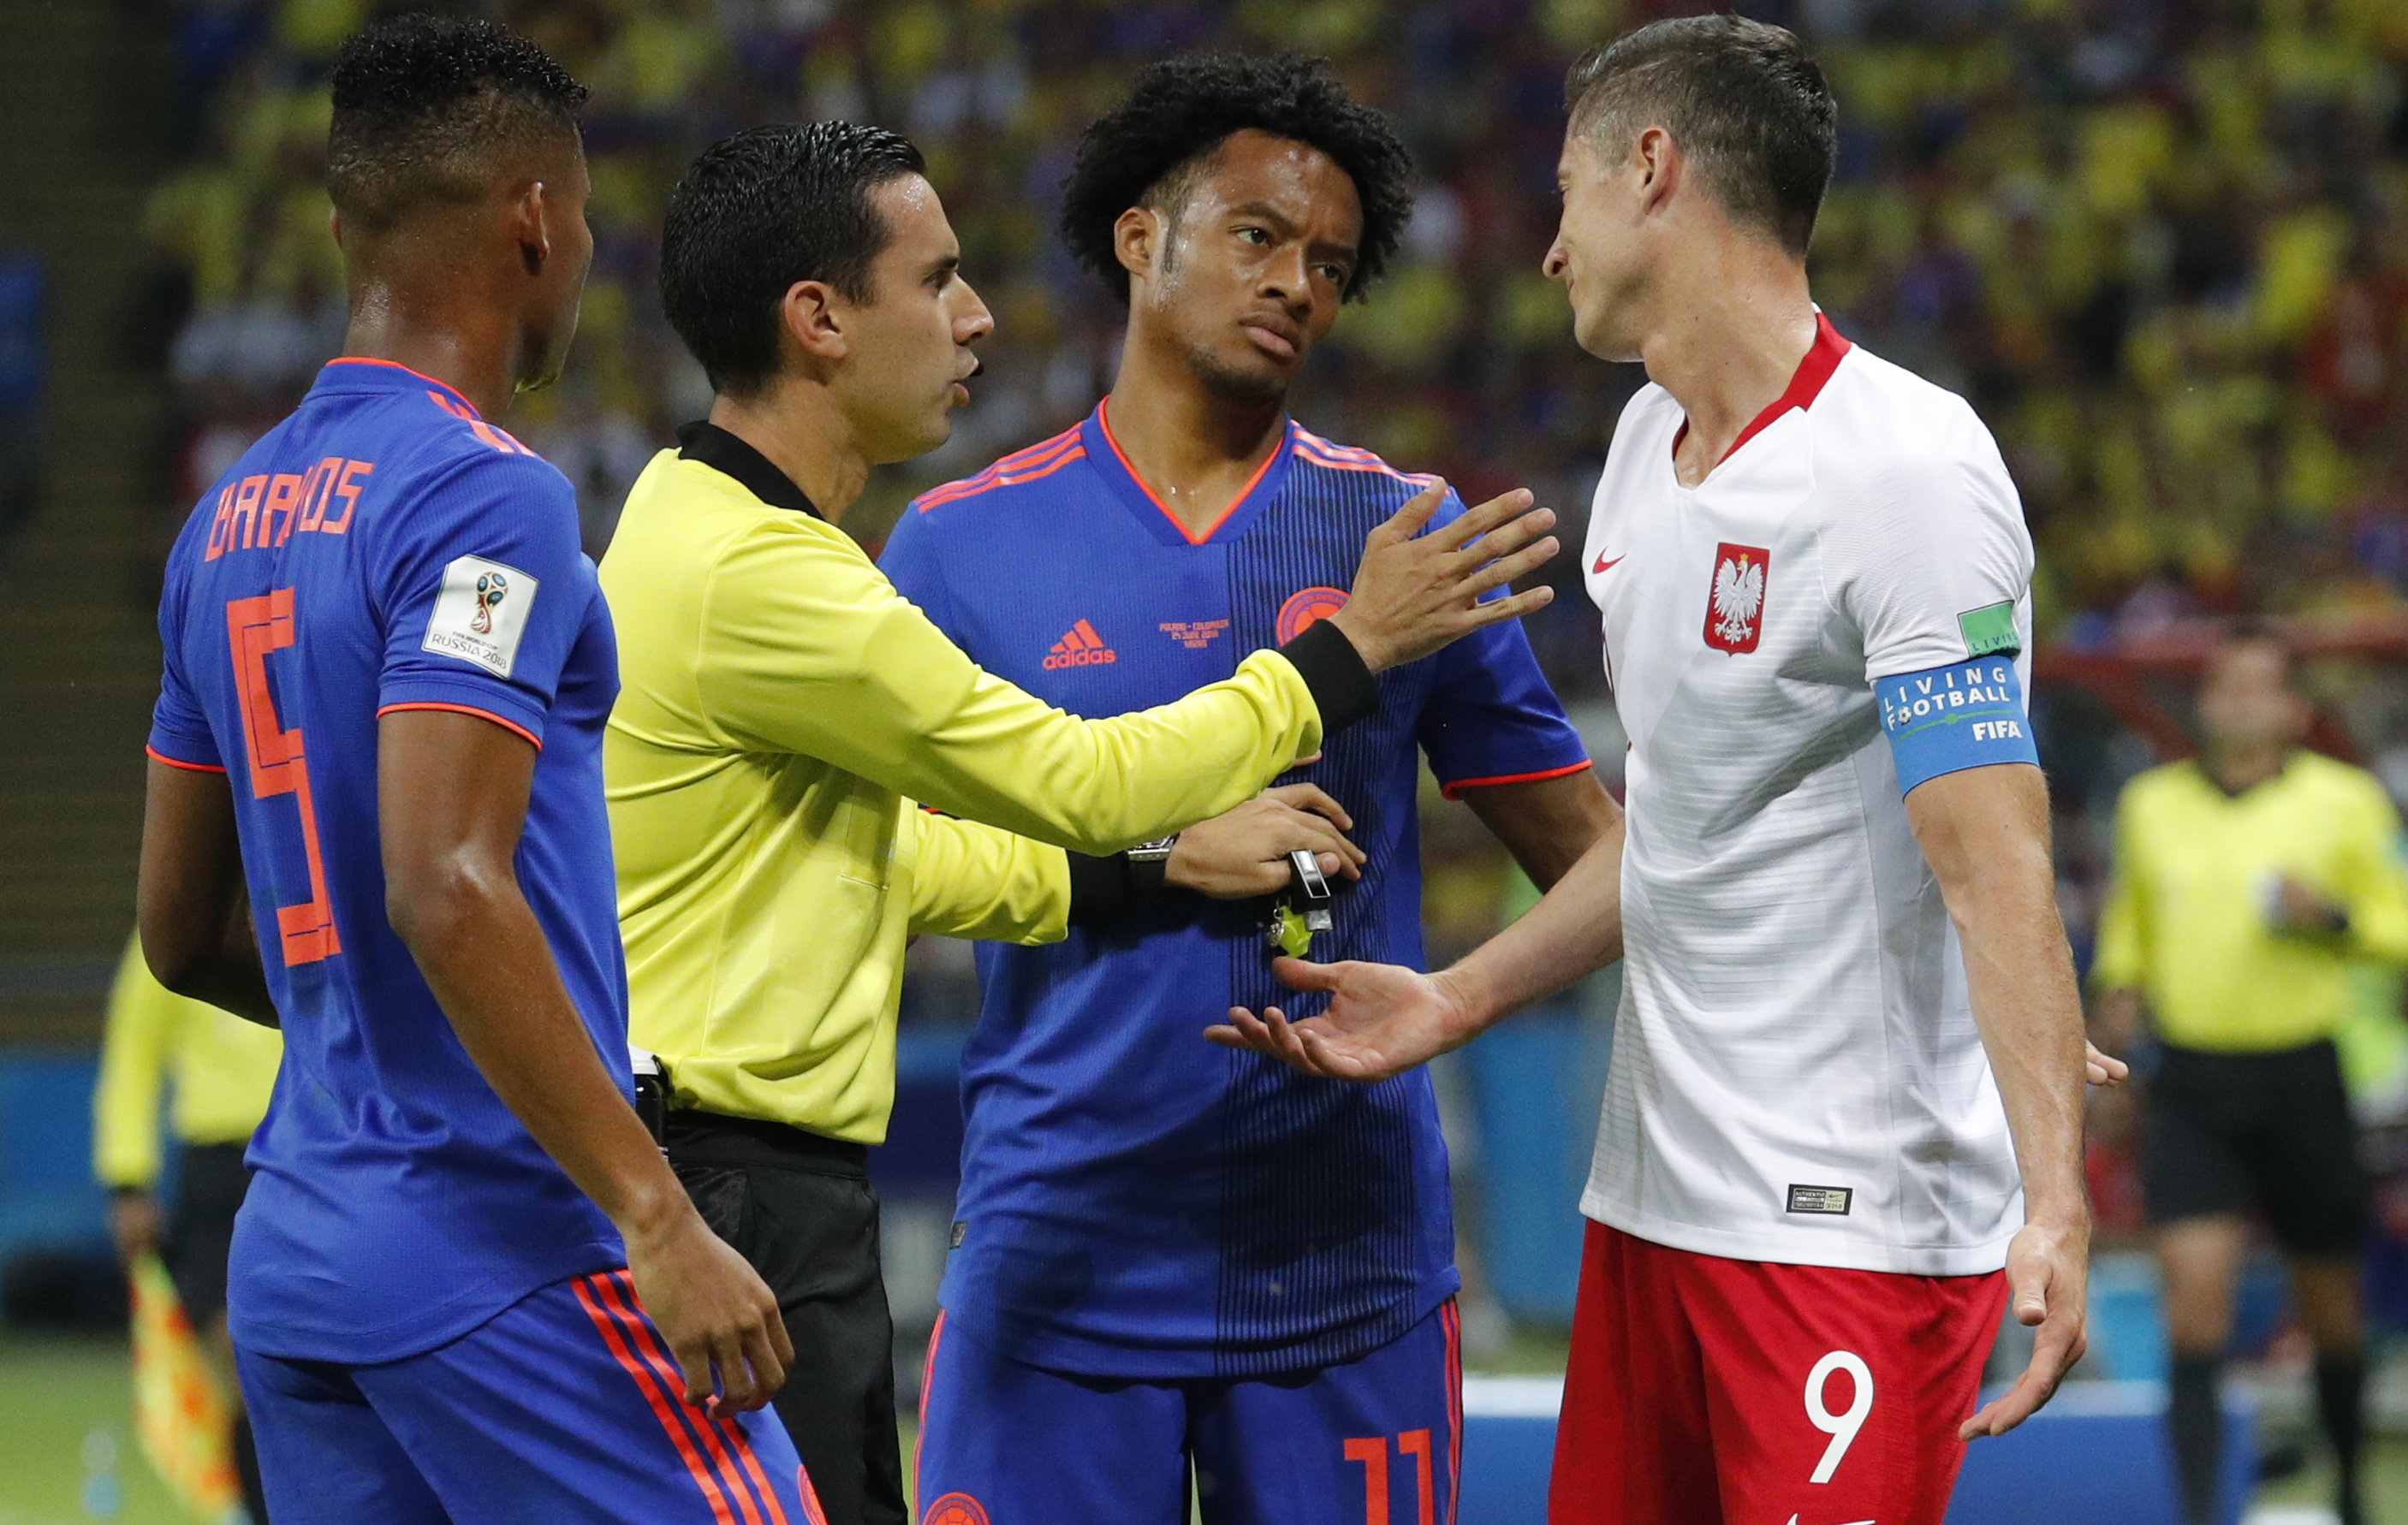 e6386f19013 ... Ramos talks to them during the FIFA World Cup 2018 group H preliminary  round soccer match between Poland and Colombia in Kazan